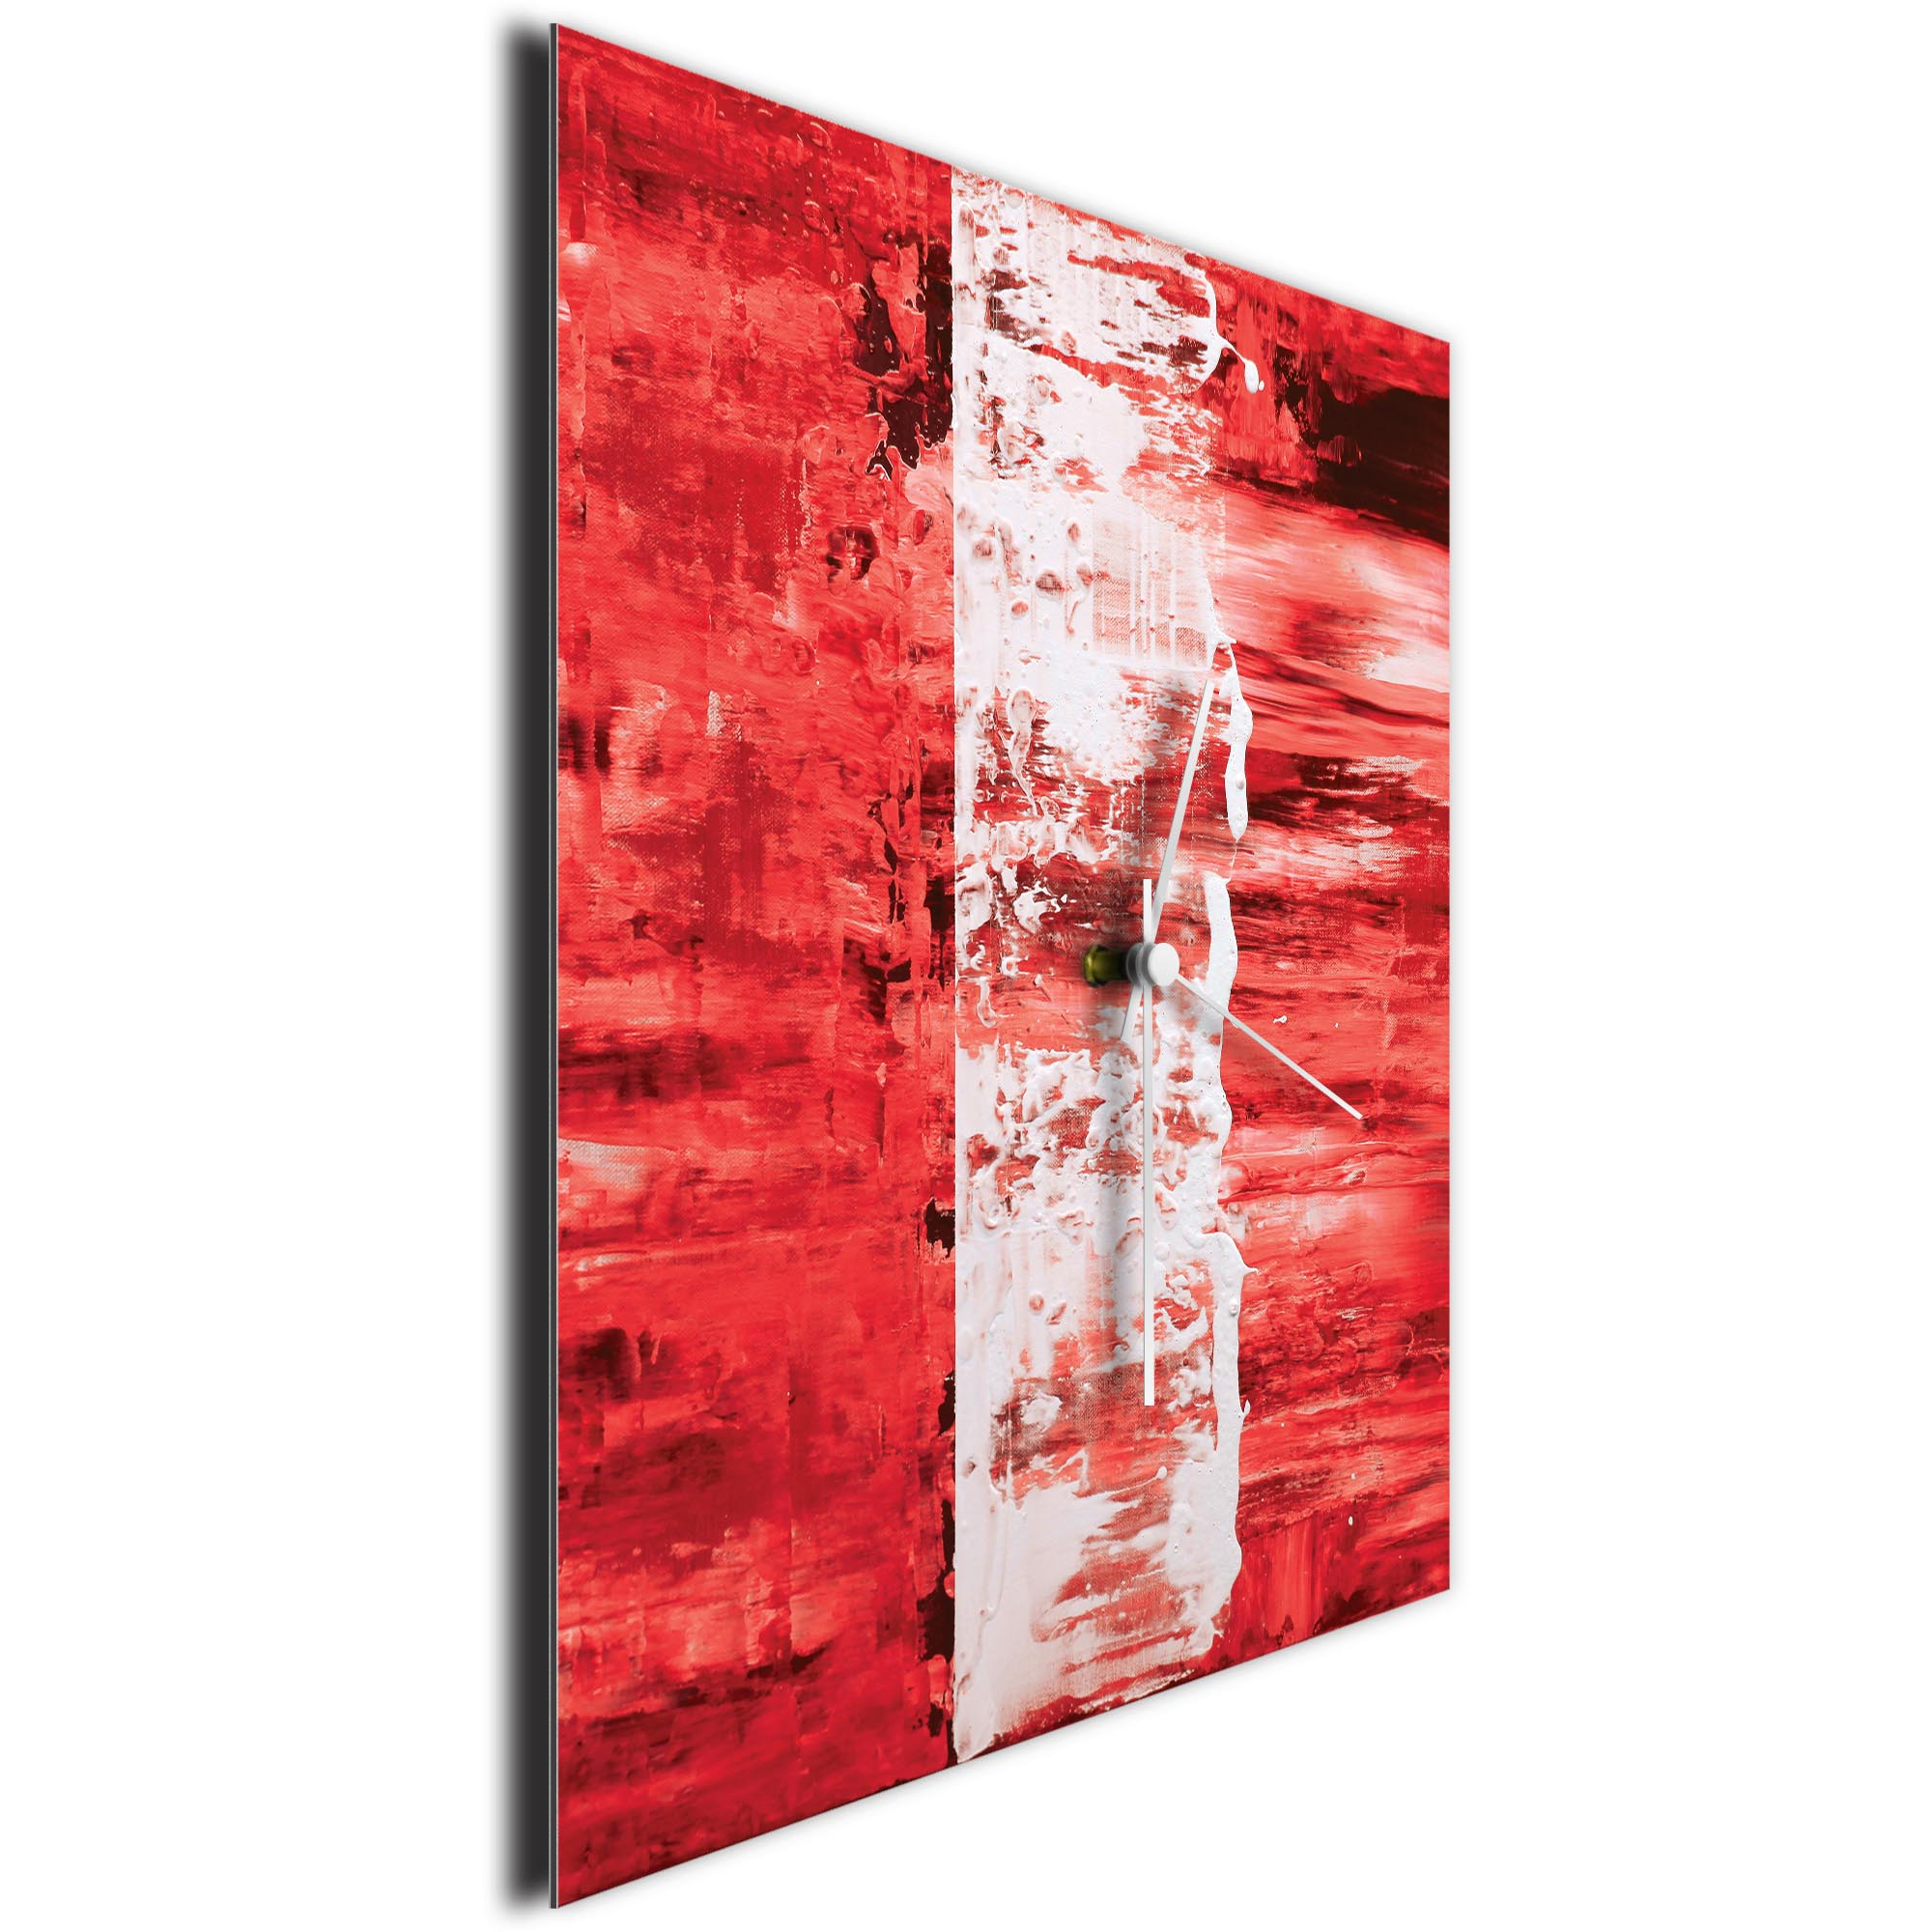 Red Street Square Clock by Mendo Vasilevski - Urban Abstract Home Decor - Image 3